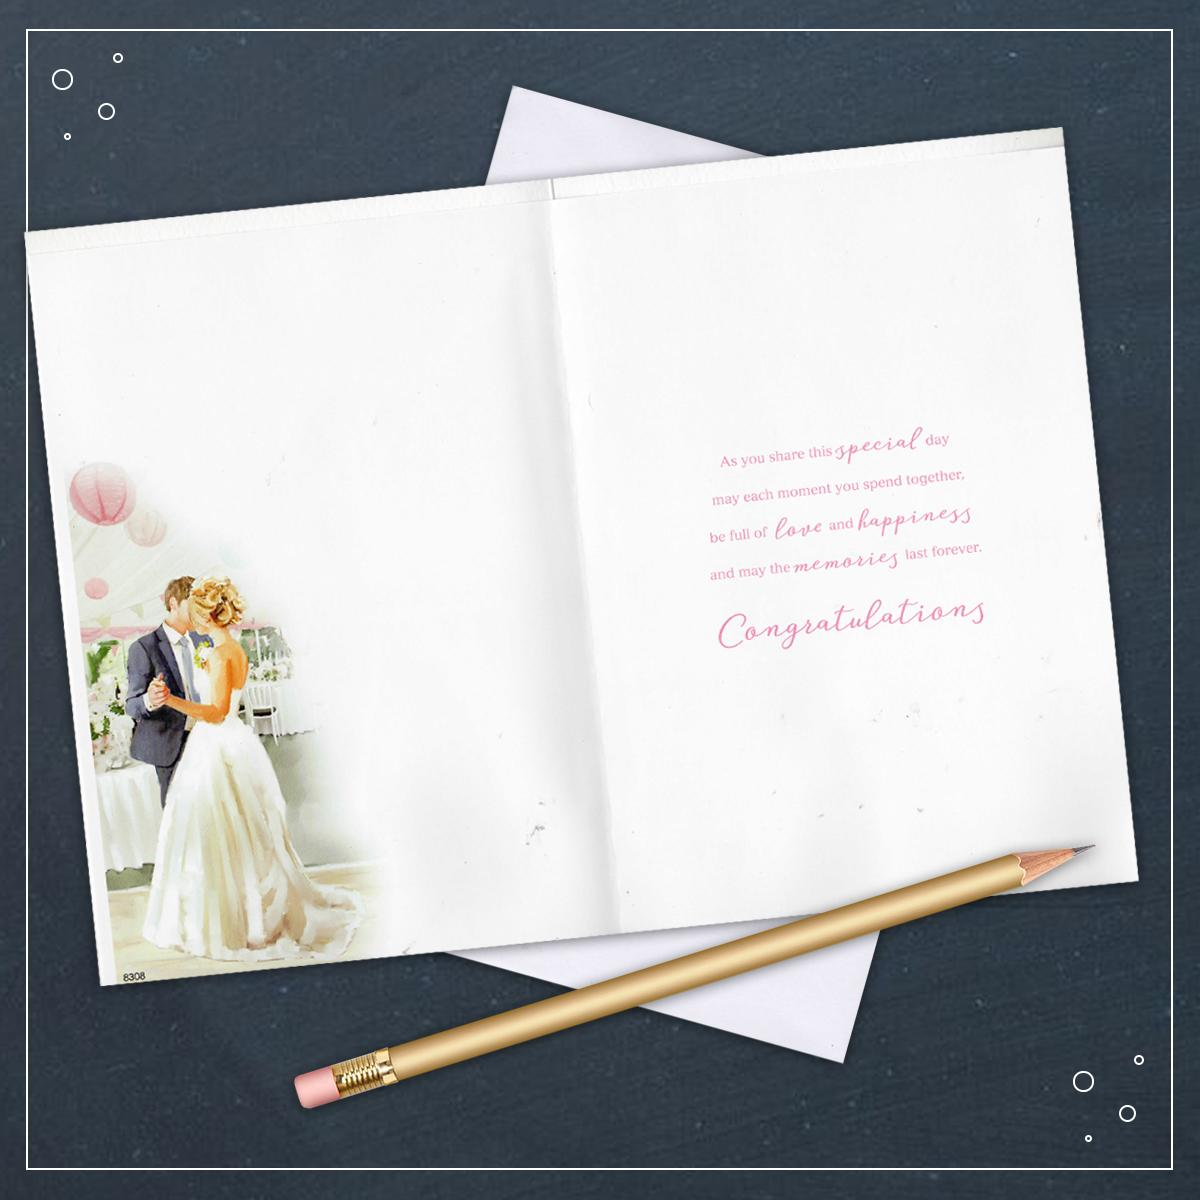 Inside Of Wedding Card Showing Layout And Printed Text